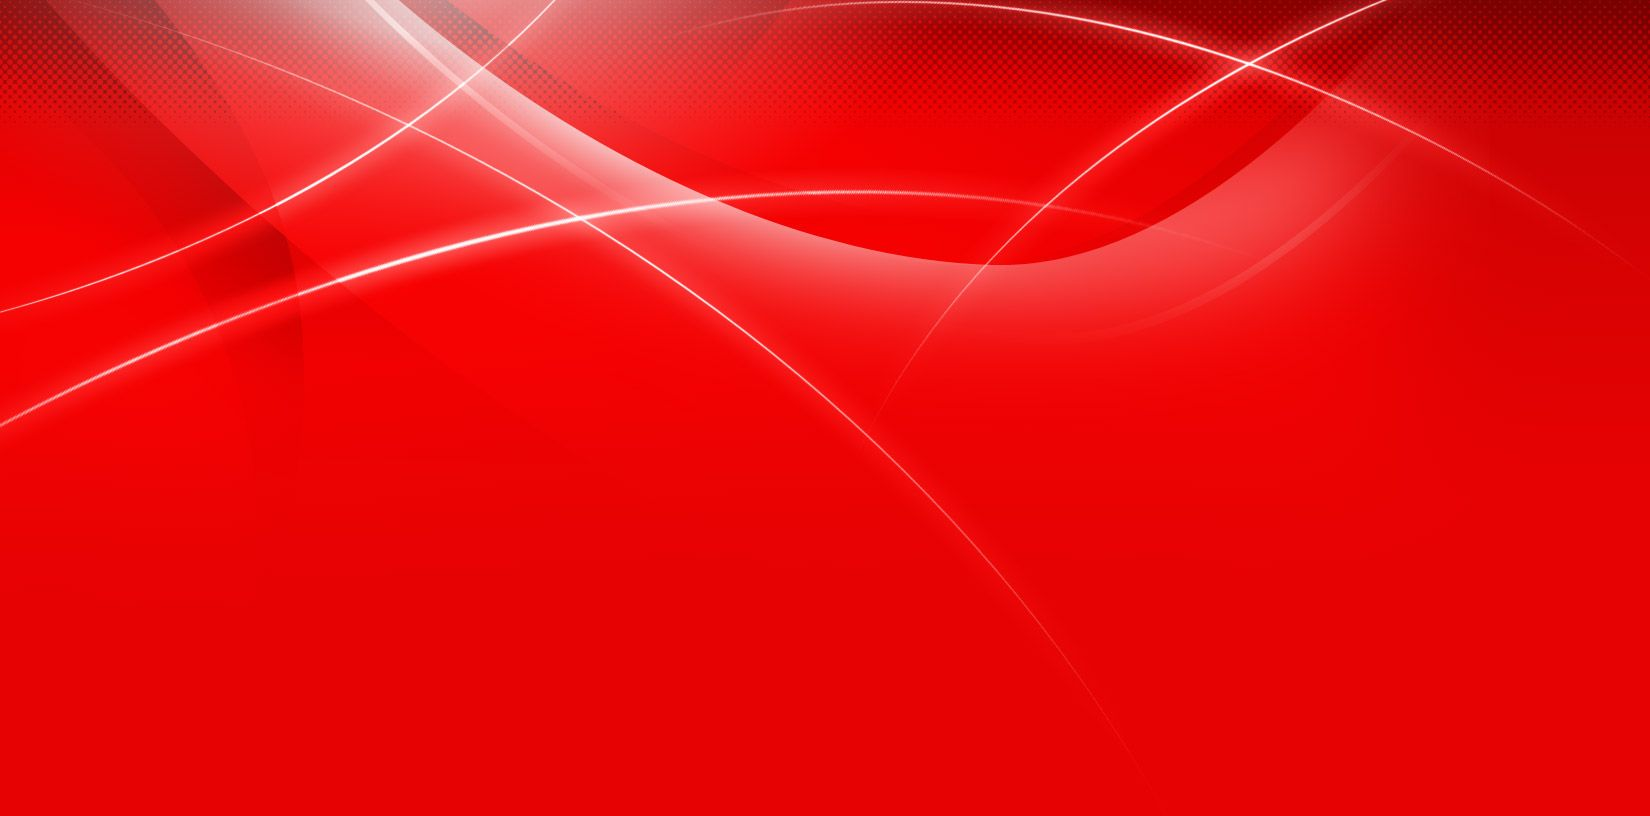 red color background hd - photo #48